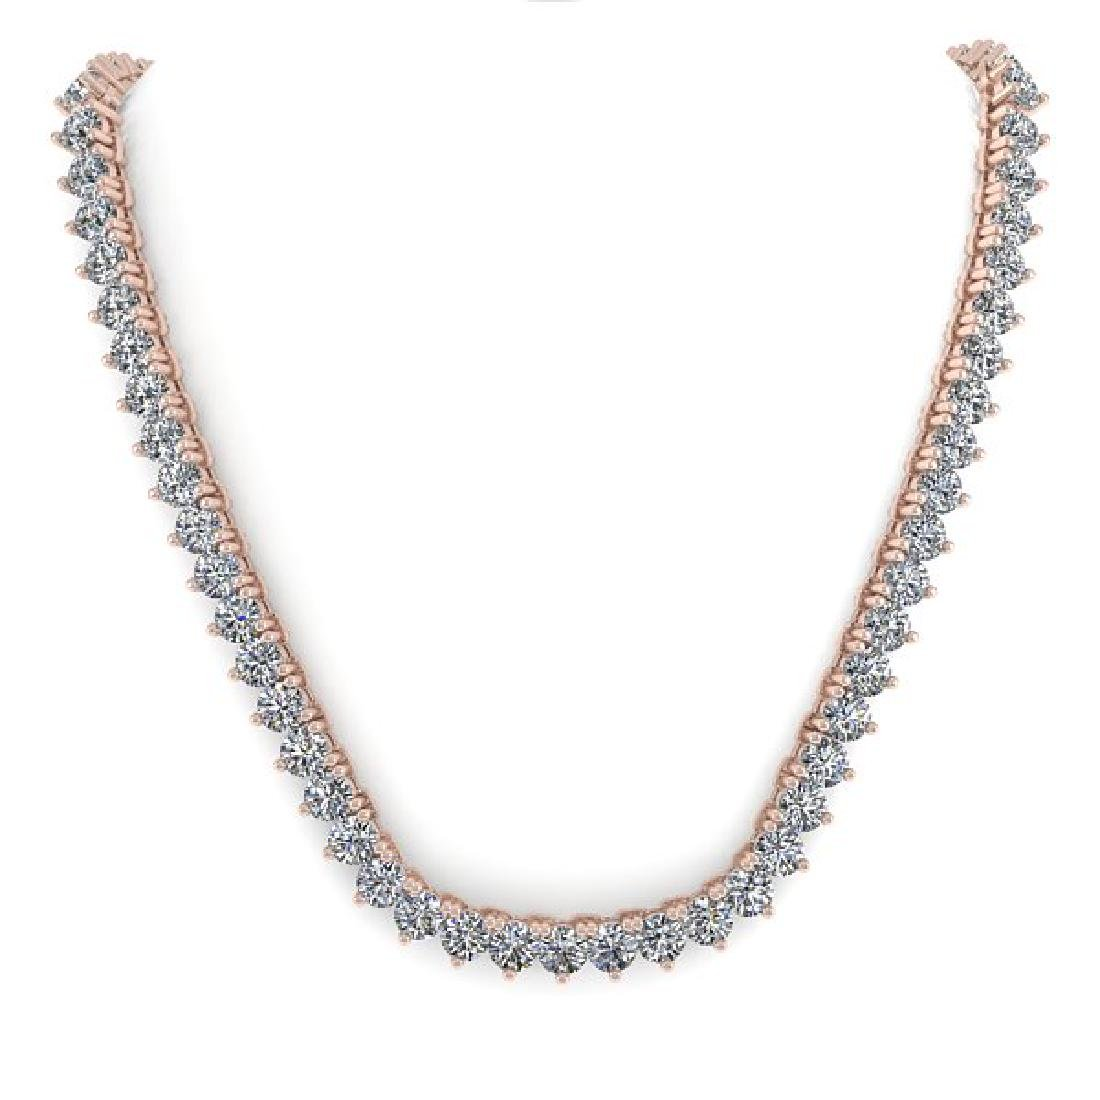 10 CTW Solitaire VS/SI Diamond Necklace 14K Rose Gold - 3